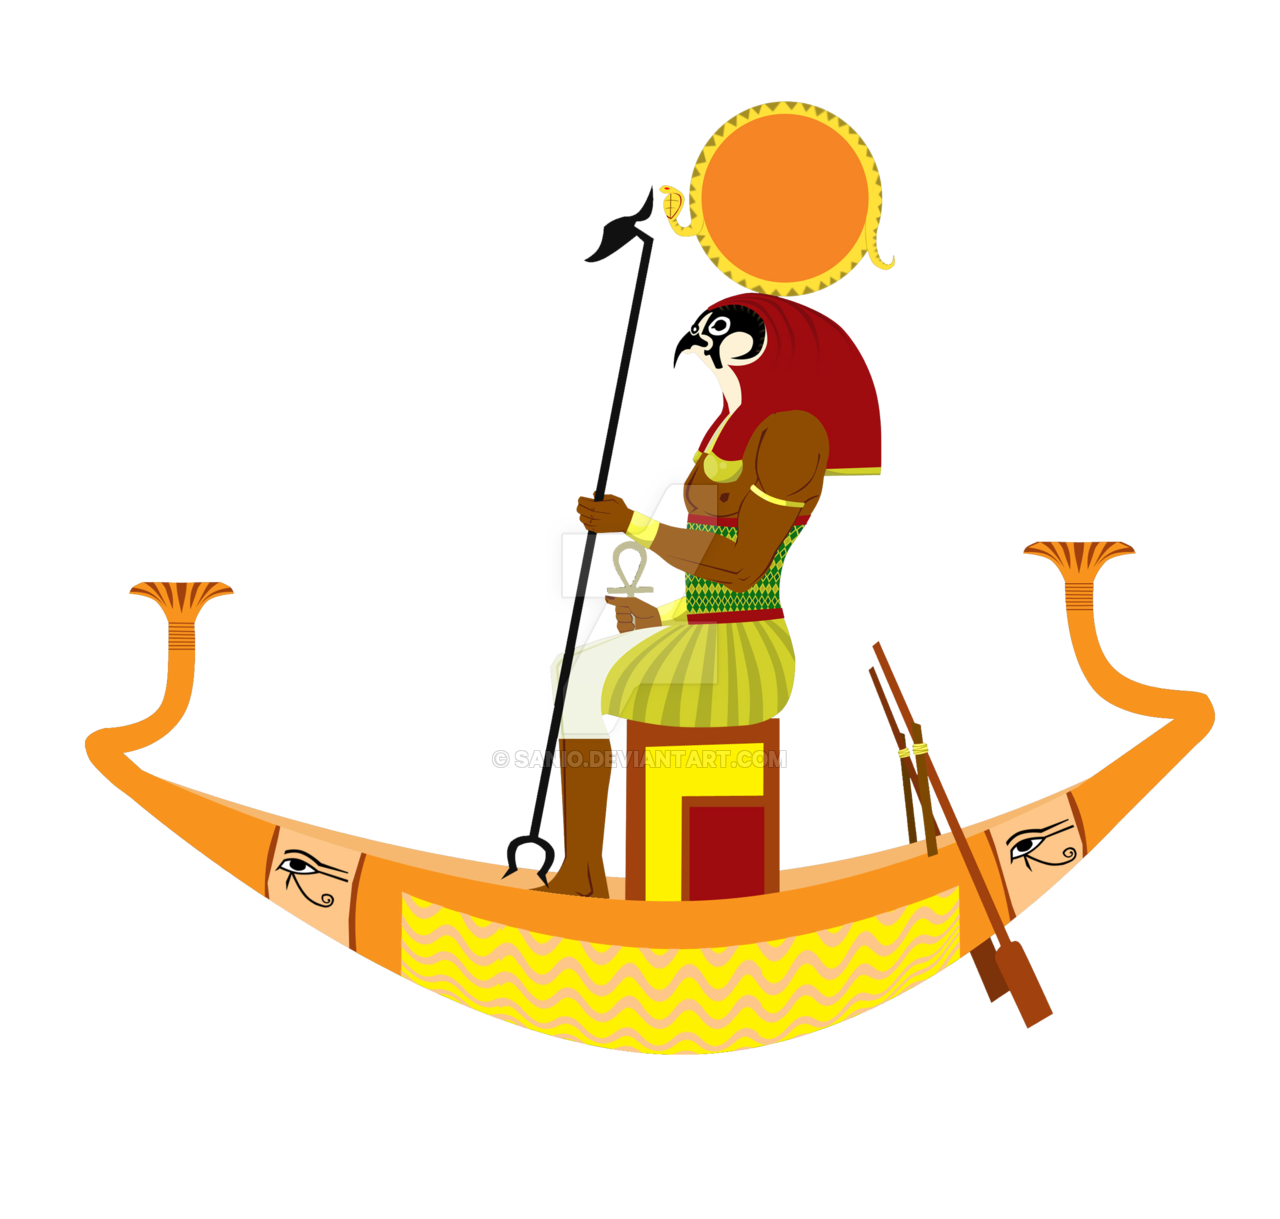 God ra on a. Clipart boat ancient egyptian